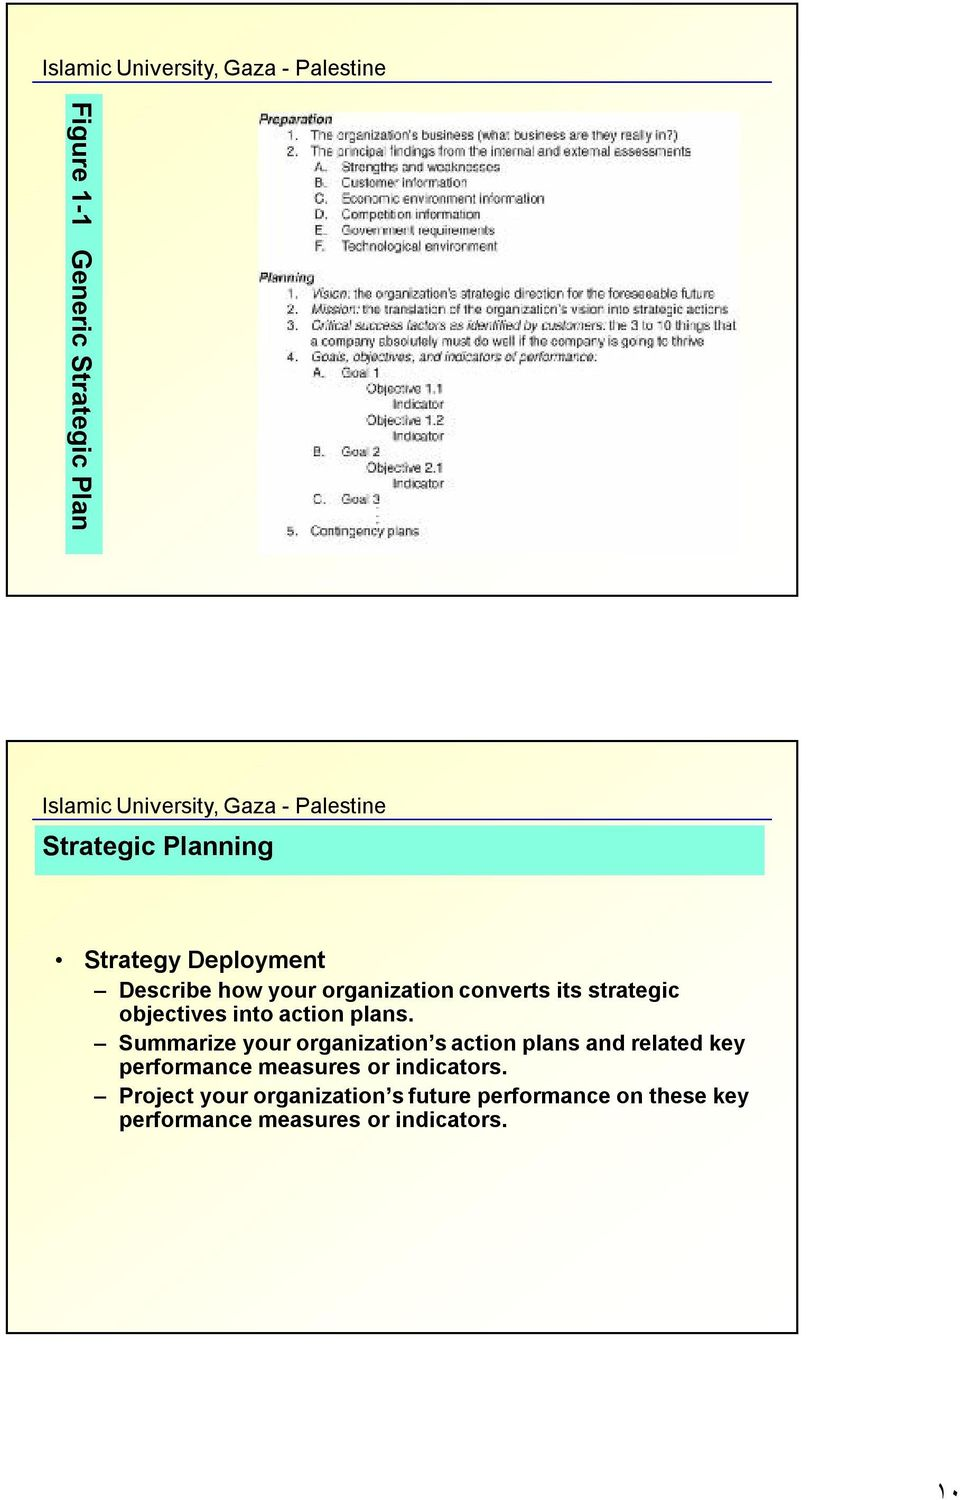 Summarize your organization s action plans and related key performance measures or